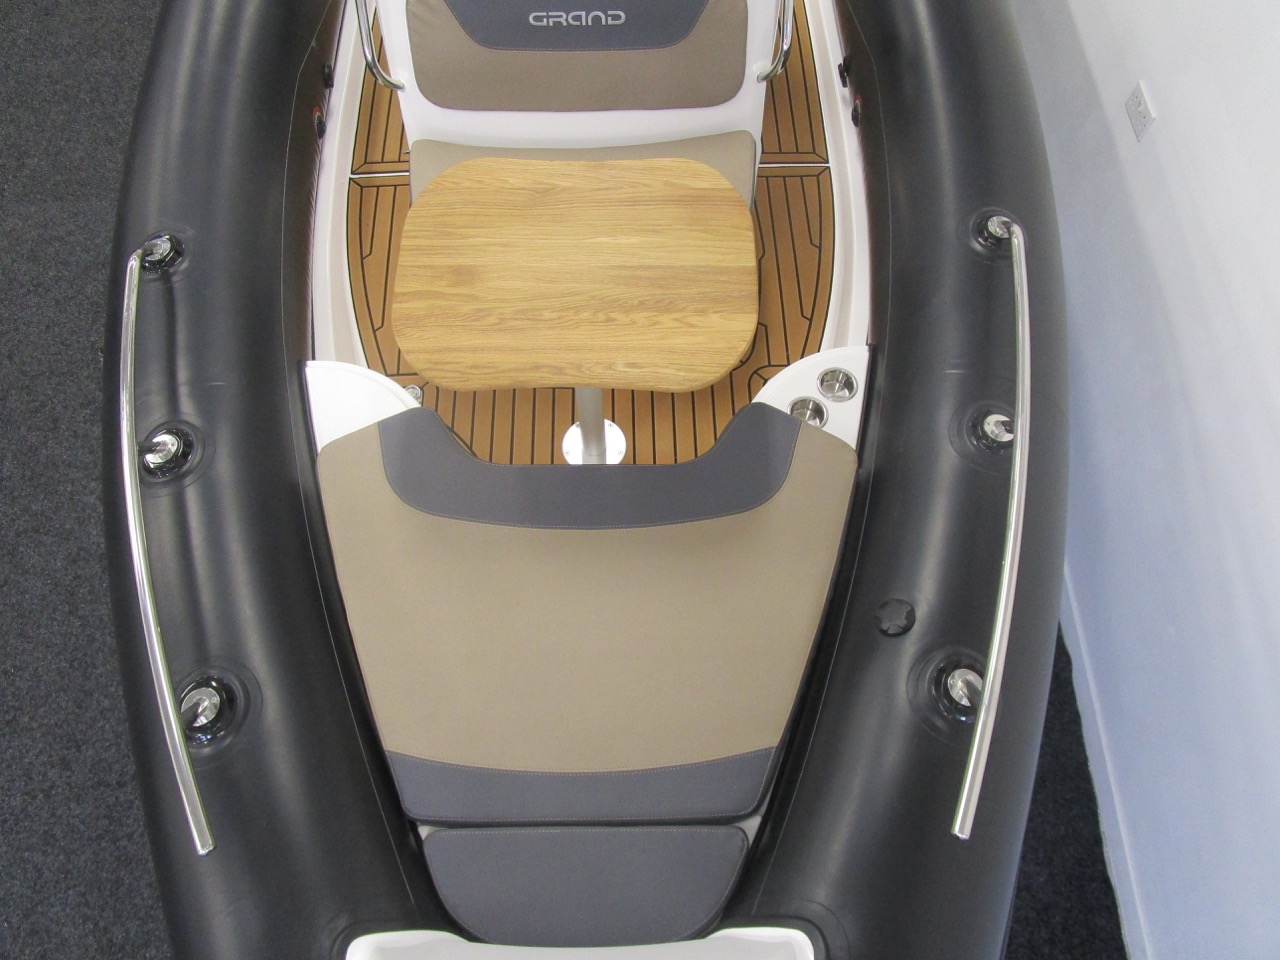 GRAND Golden Line G580 RIB bow section